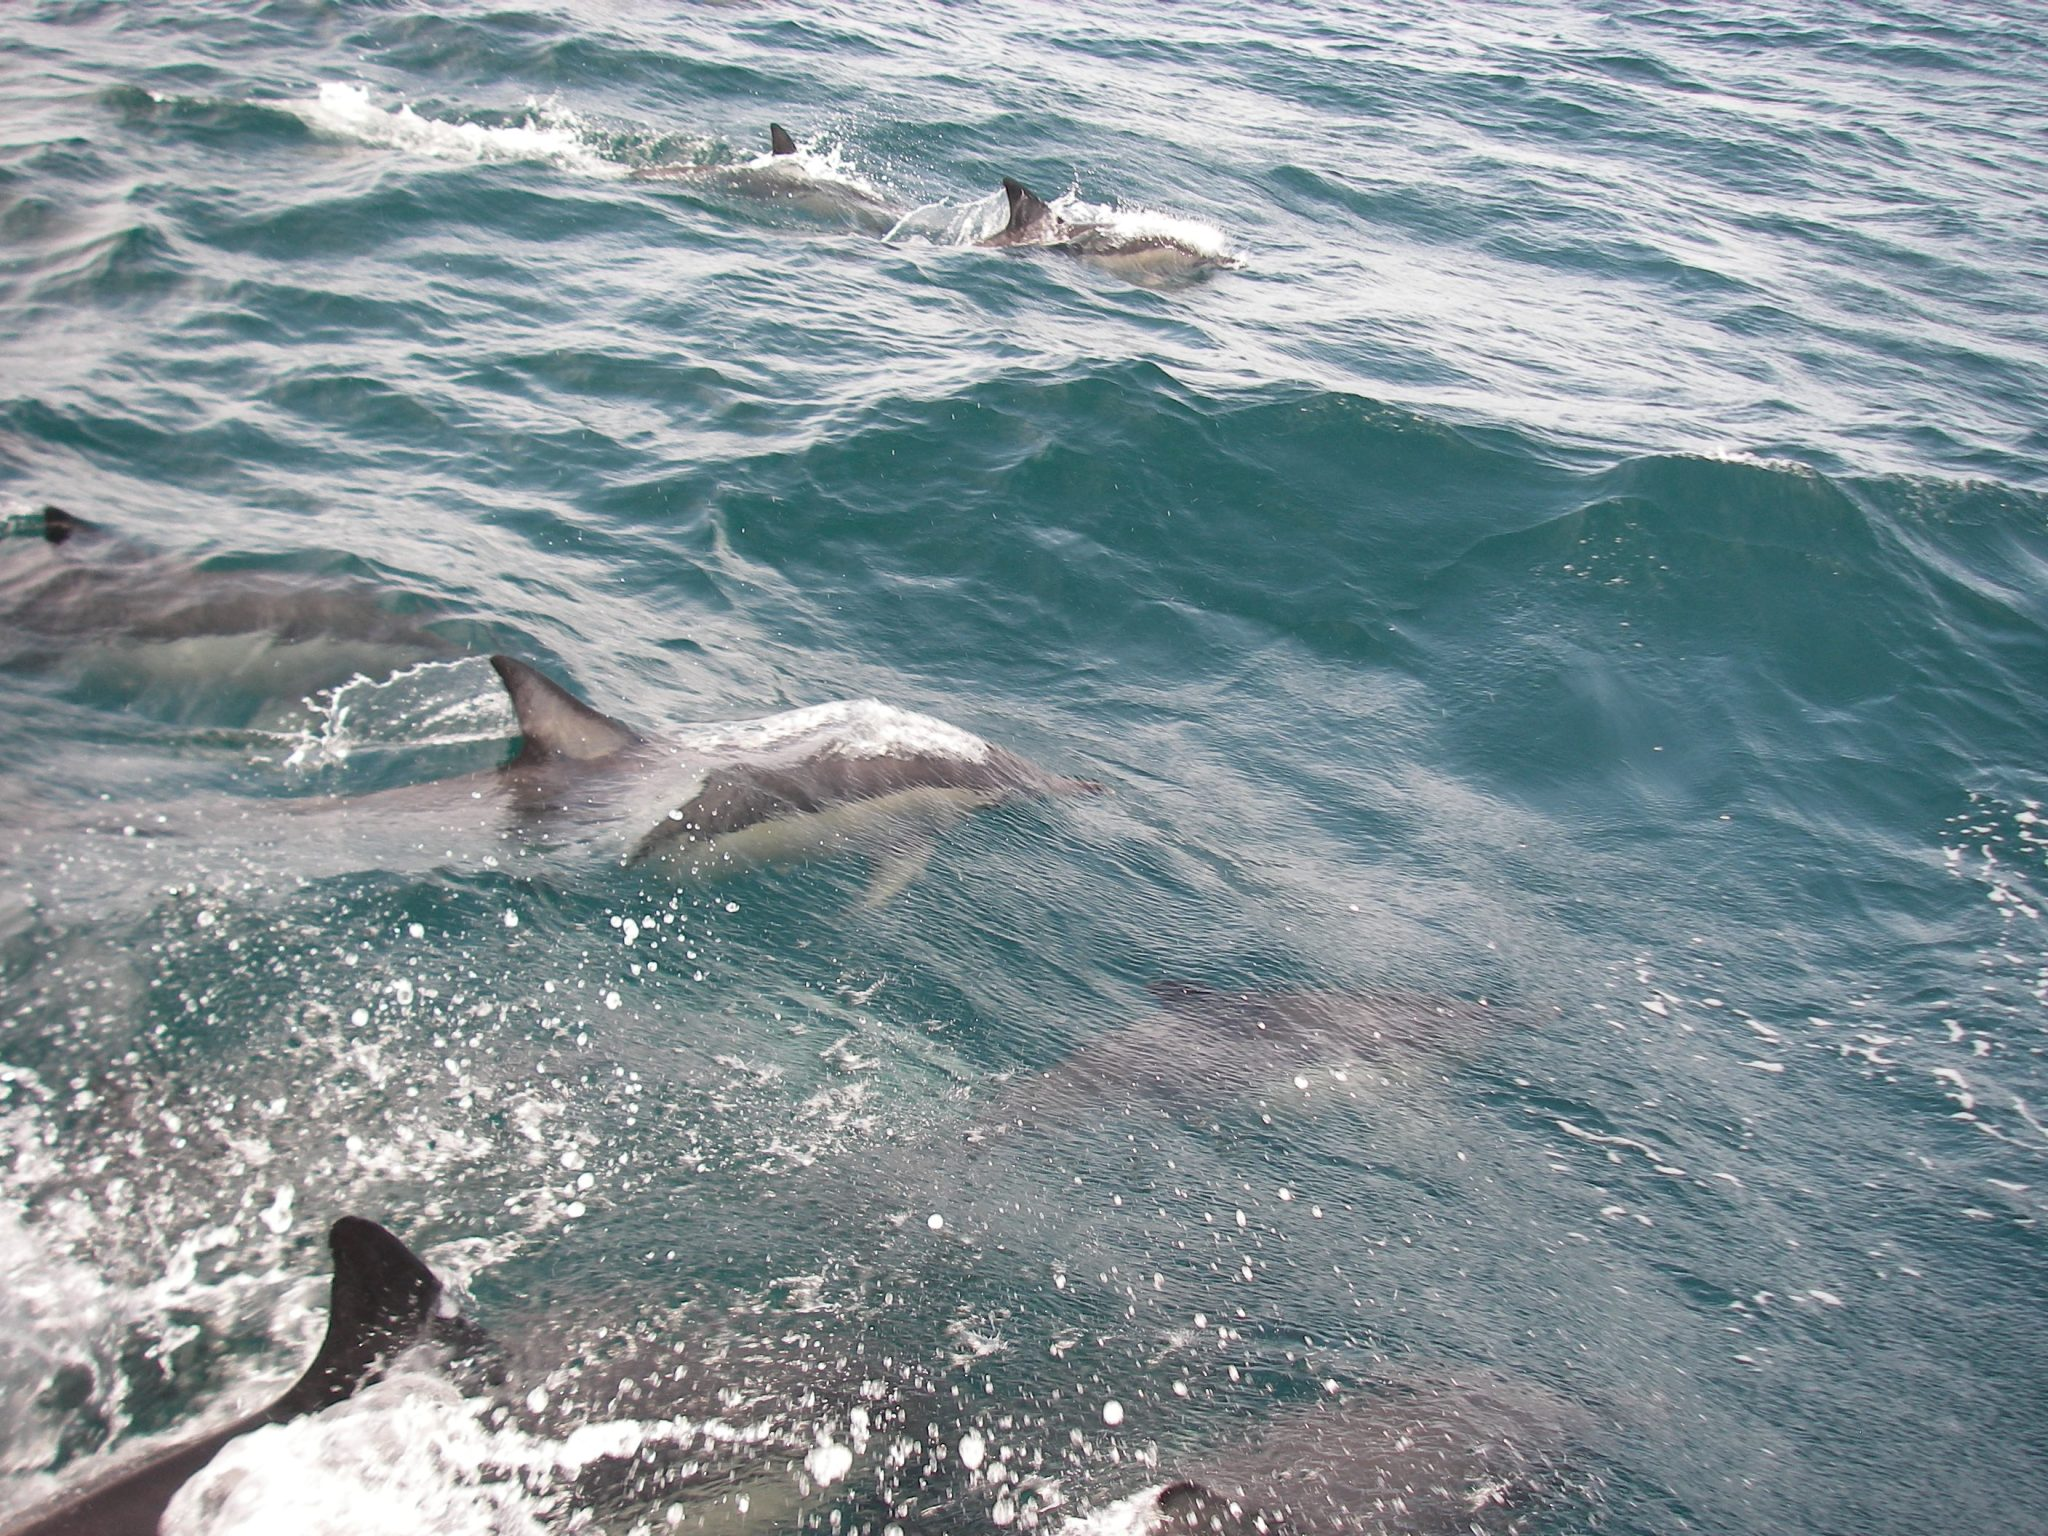 49. Joyful had lots of dolphin friends